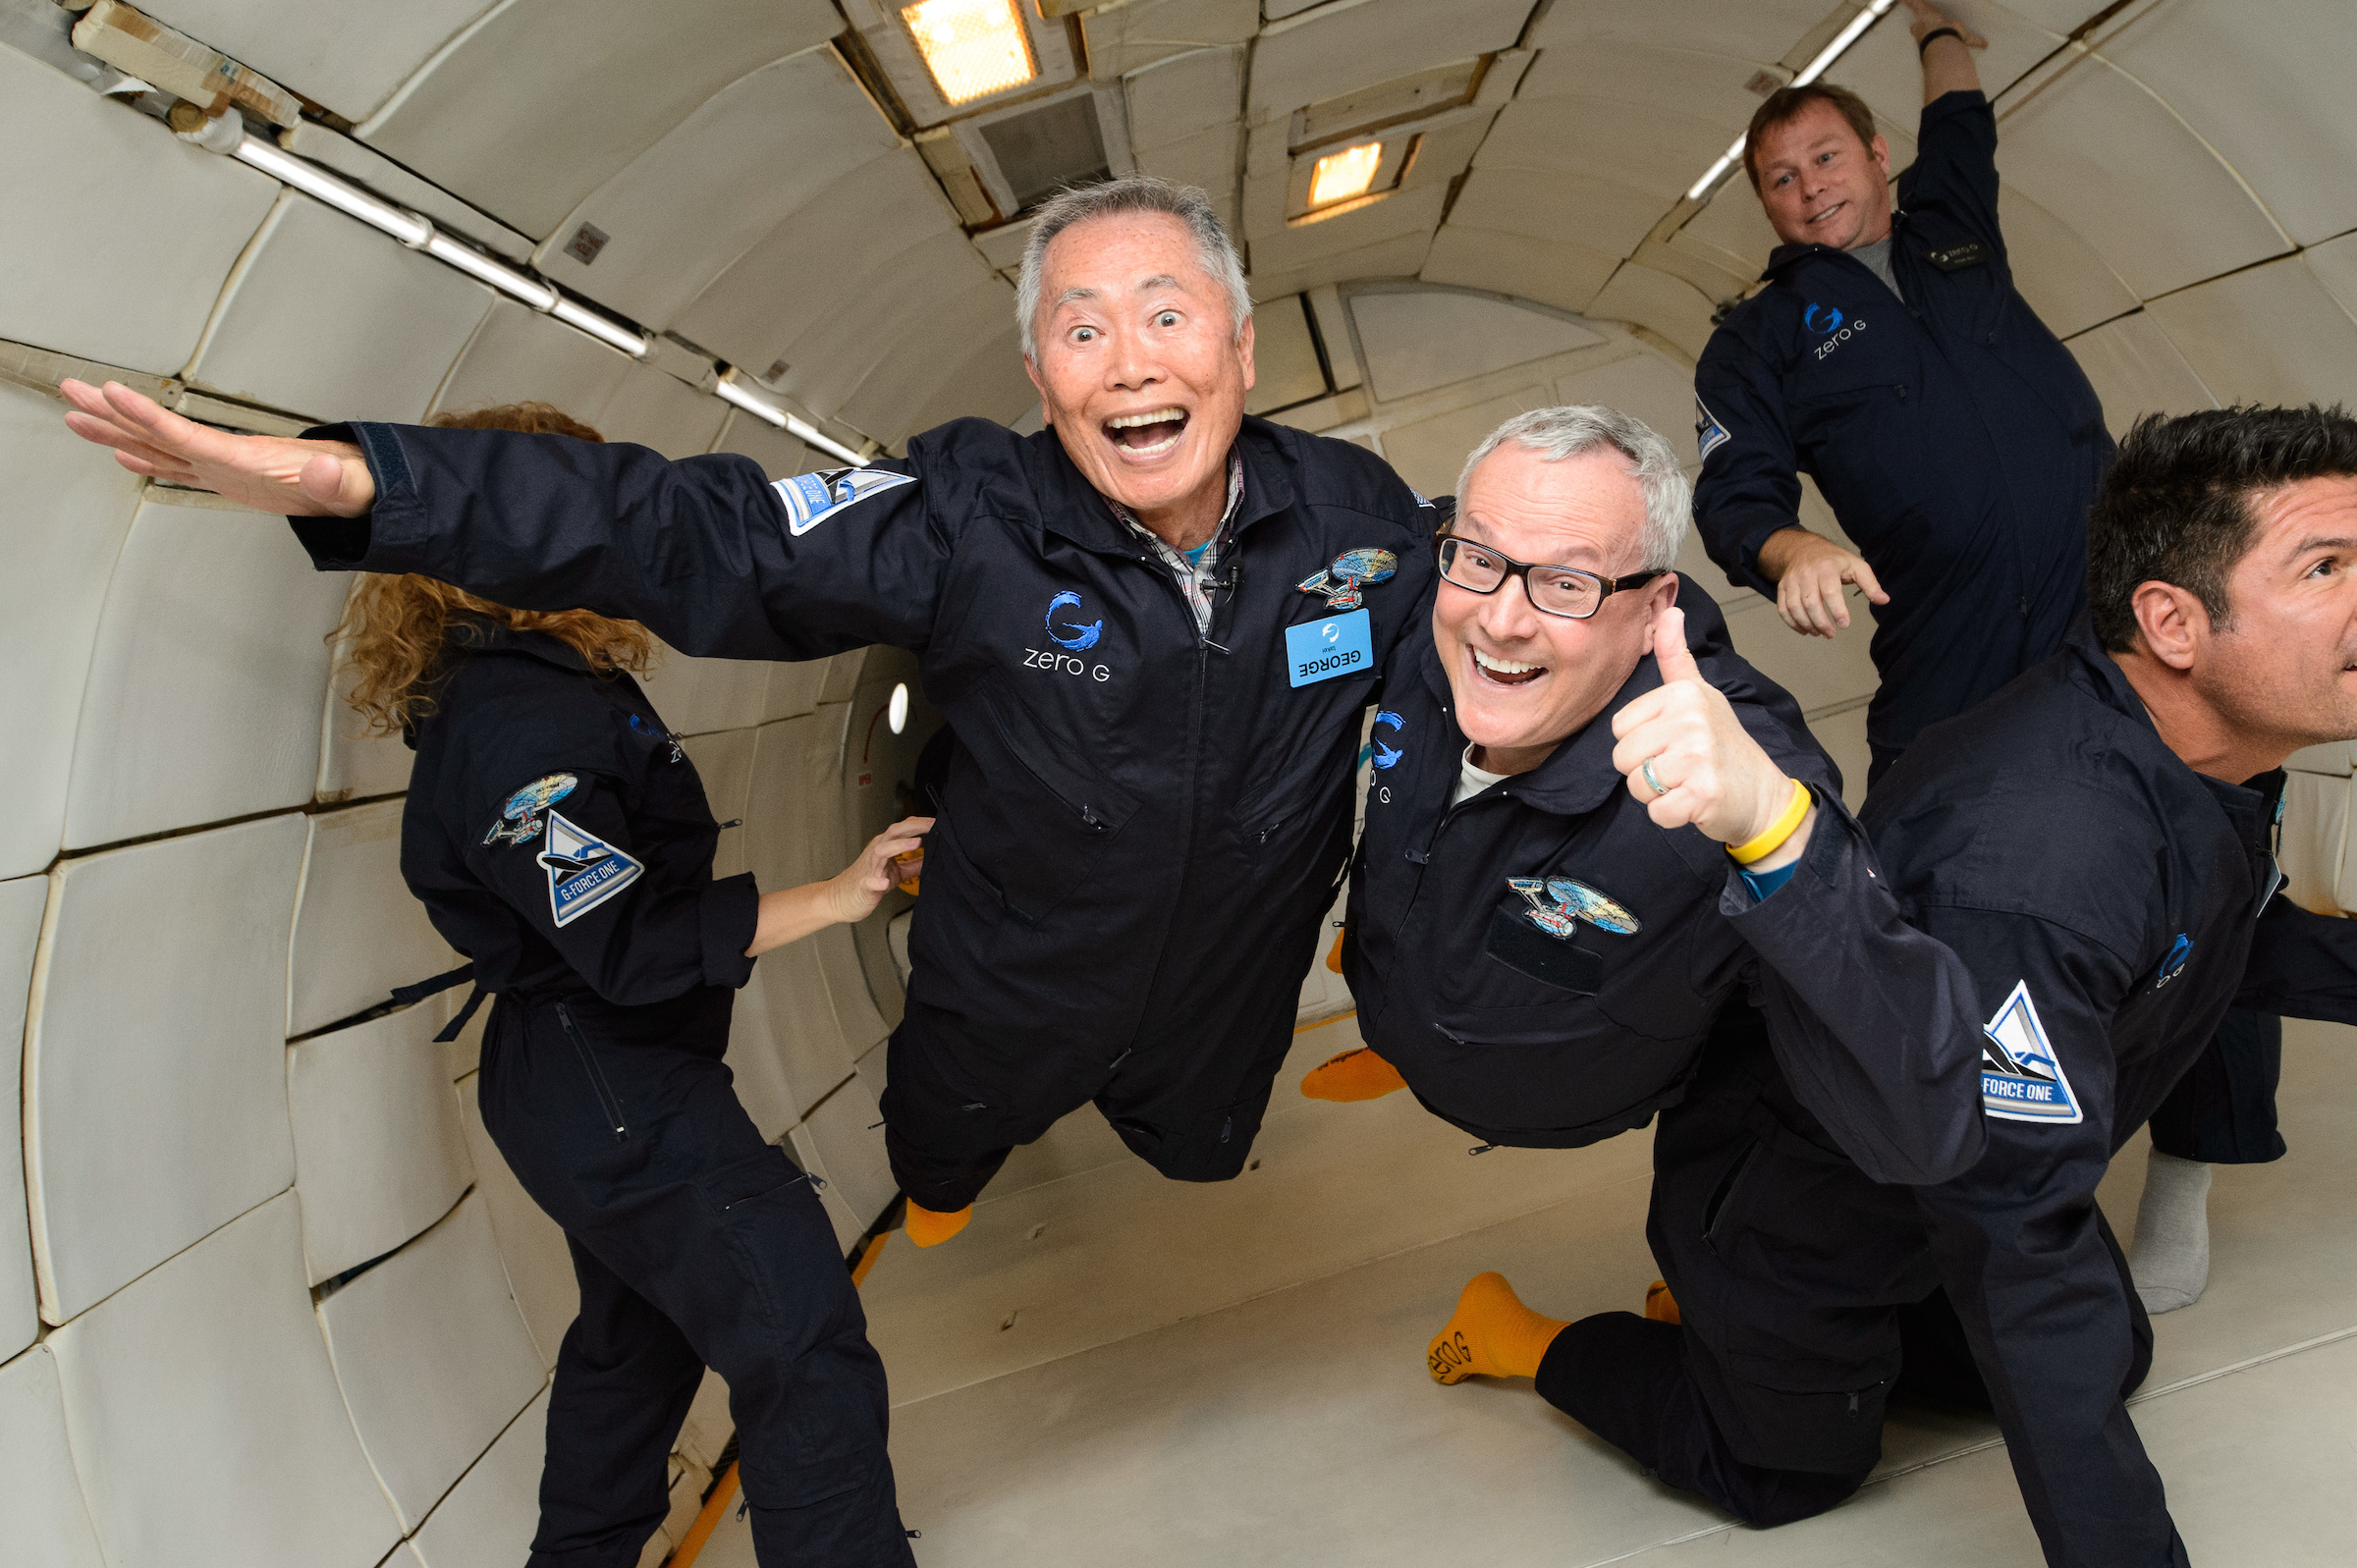 'Star Trek' Star George Takei and Fans Enjoy Zero-G Frontier (Photos)